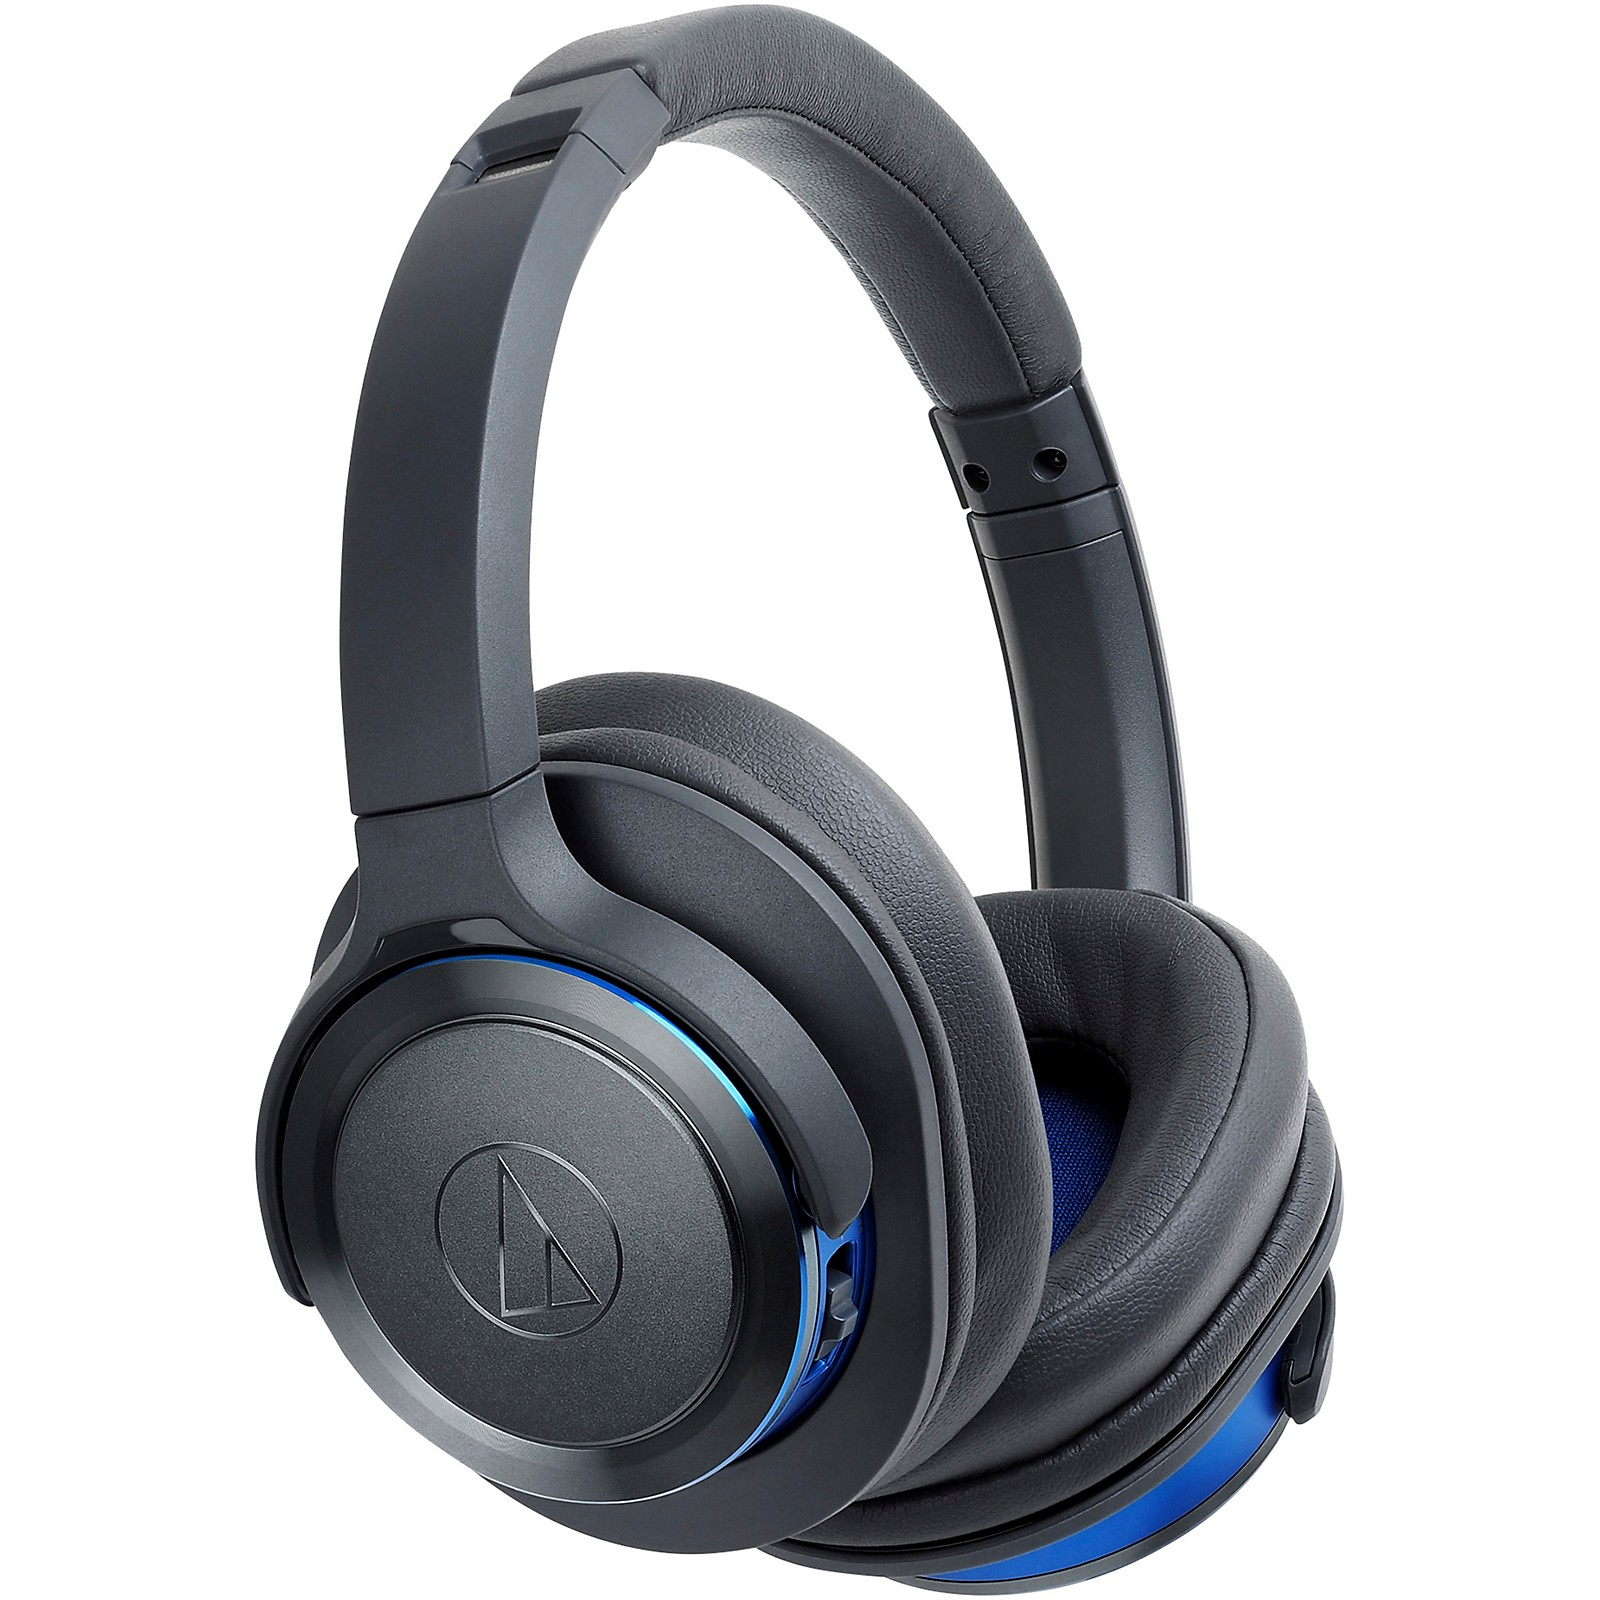 Open Box Audio-Technica ATH-WS660BTGBL Solid Bass Over-Ear Bluetooth Headphone in Blue/Gray